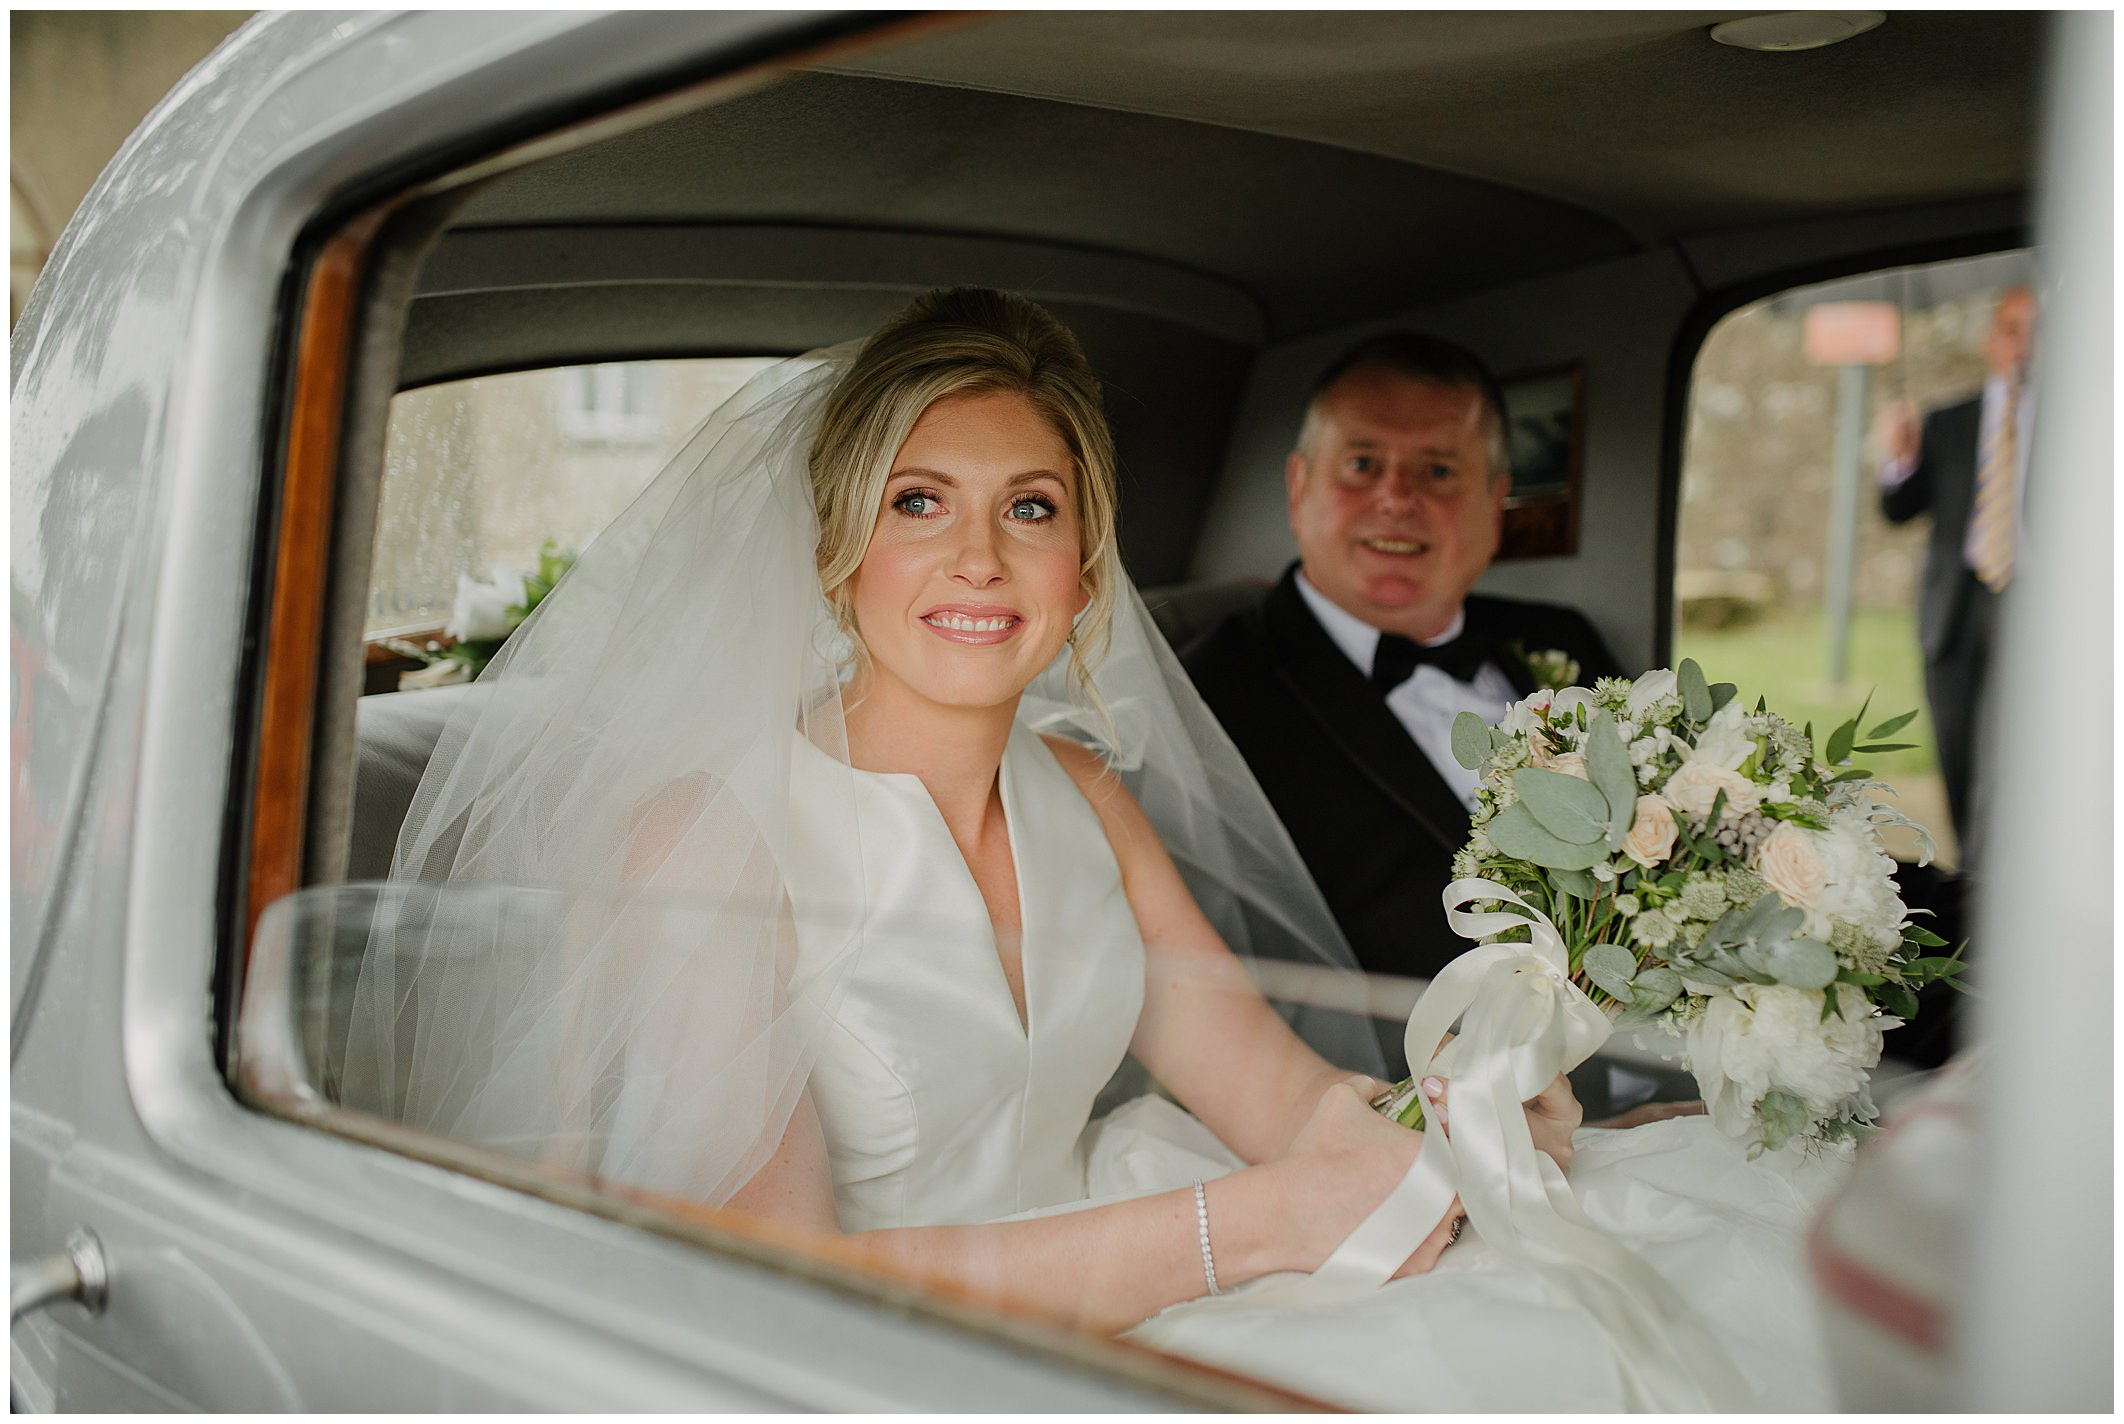 Irish-wedding-photographer-jude-browne-photography_0156.JPG